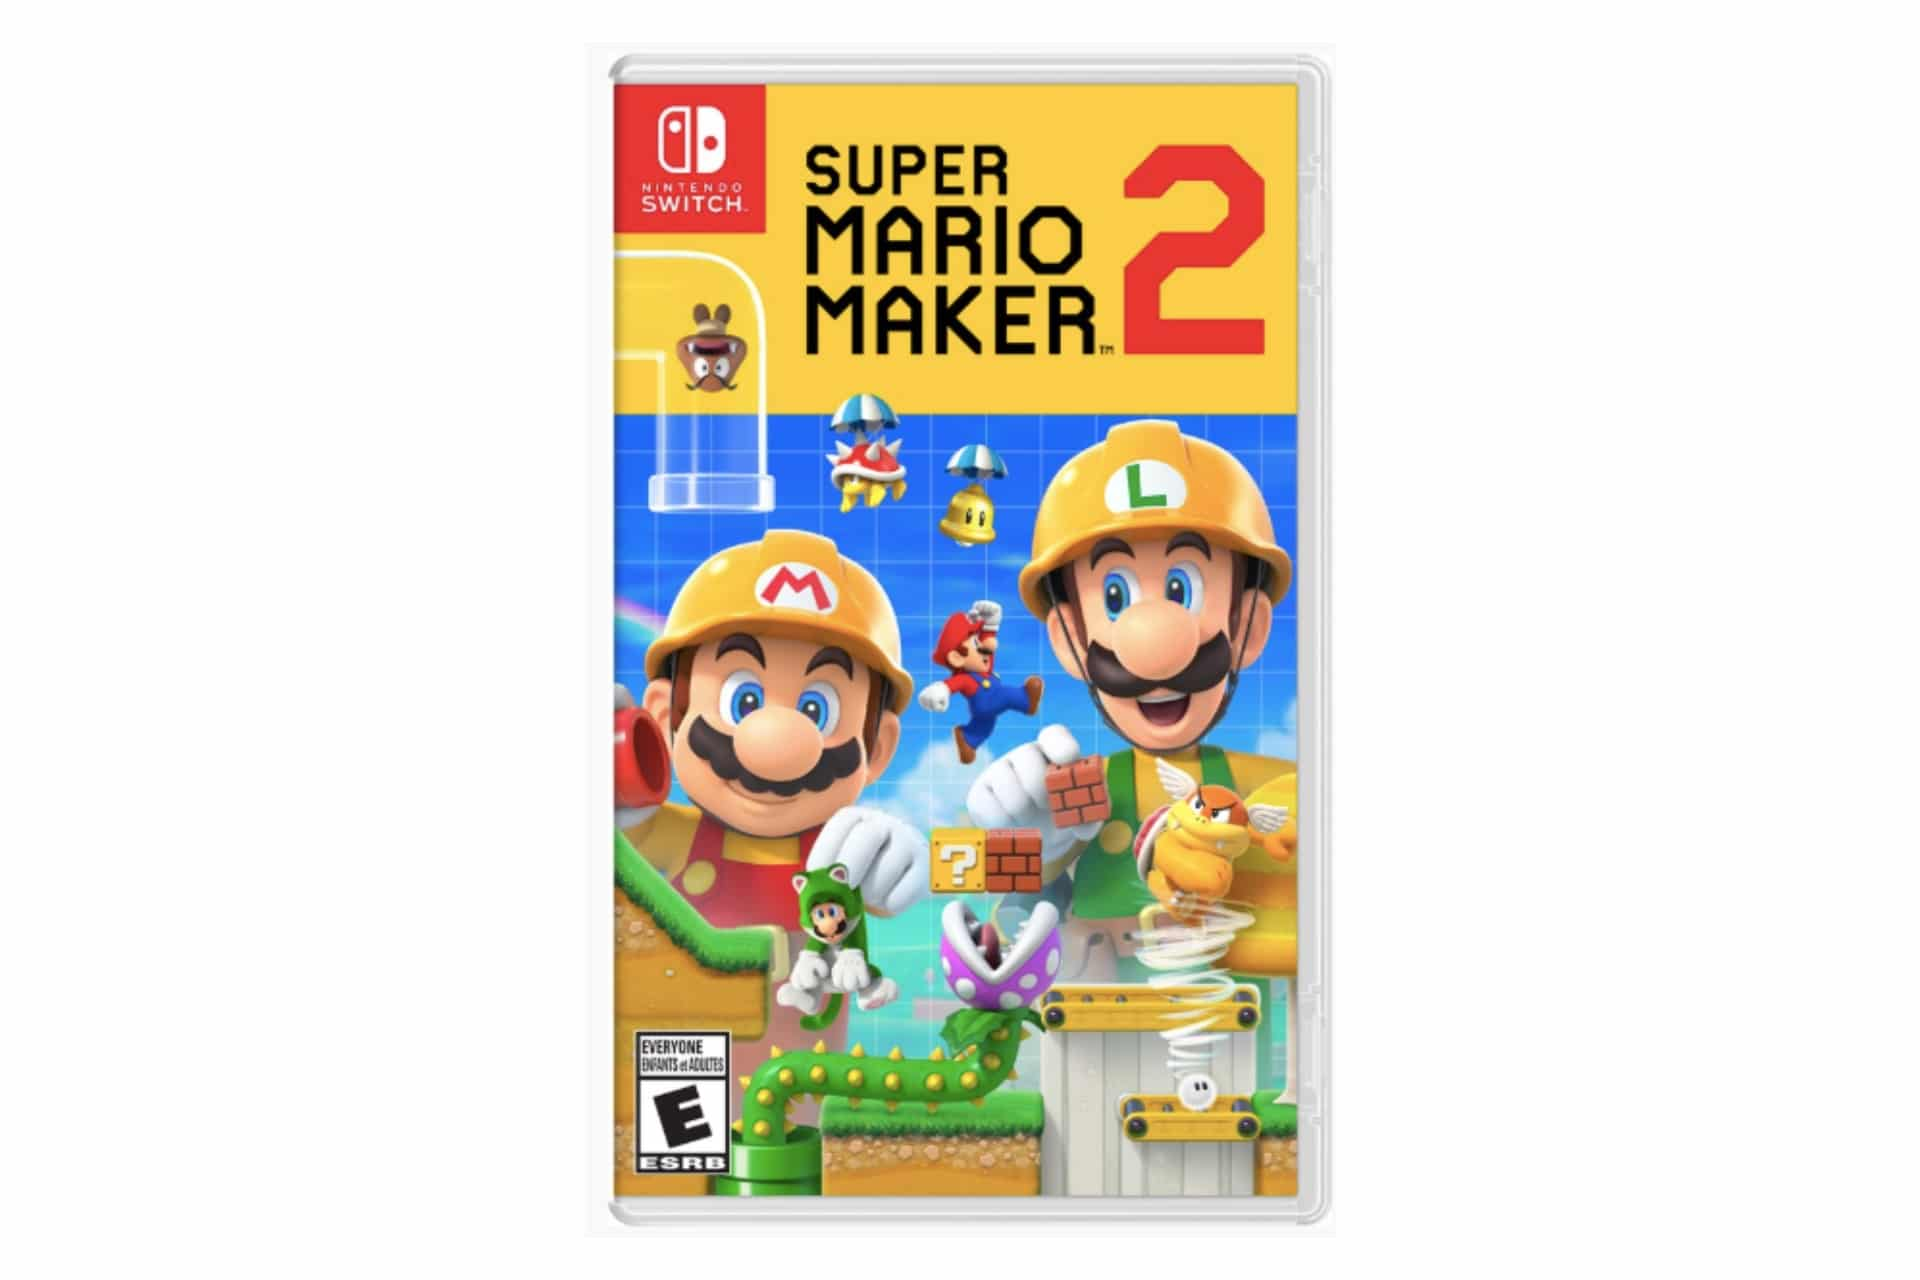 Super Mario Maker 2 game cover